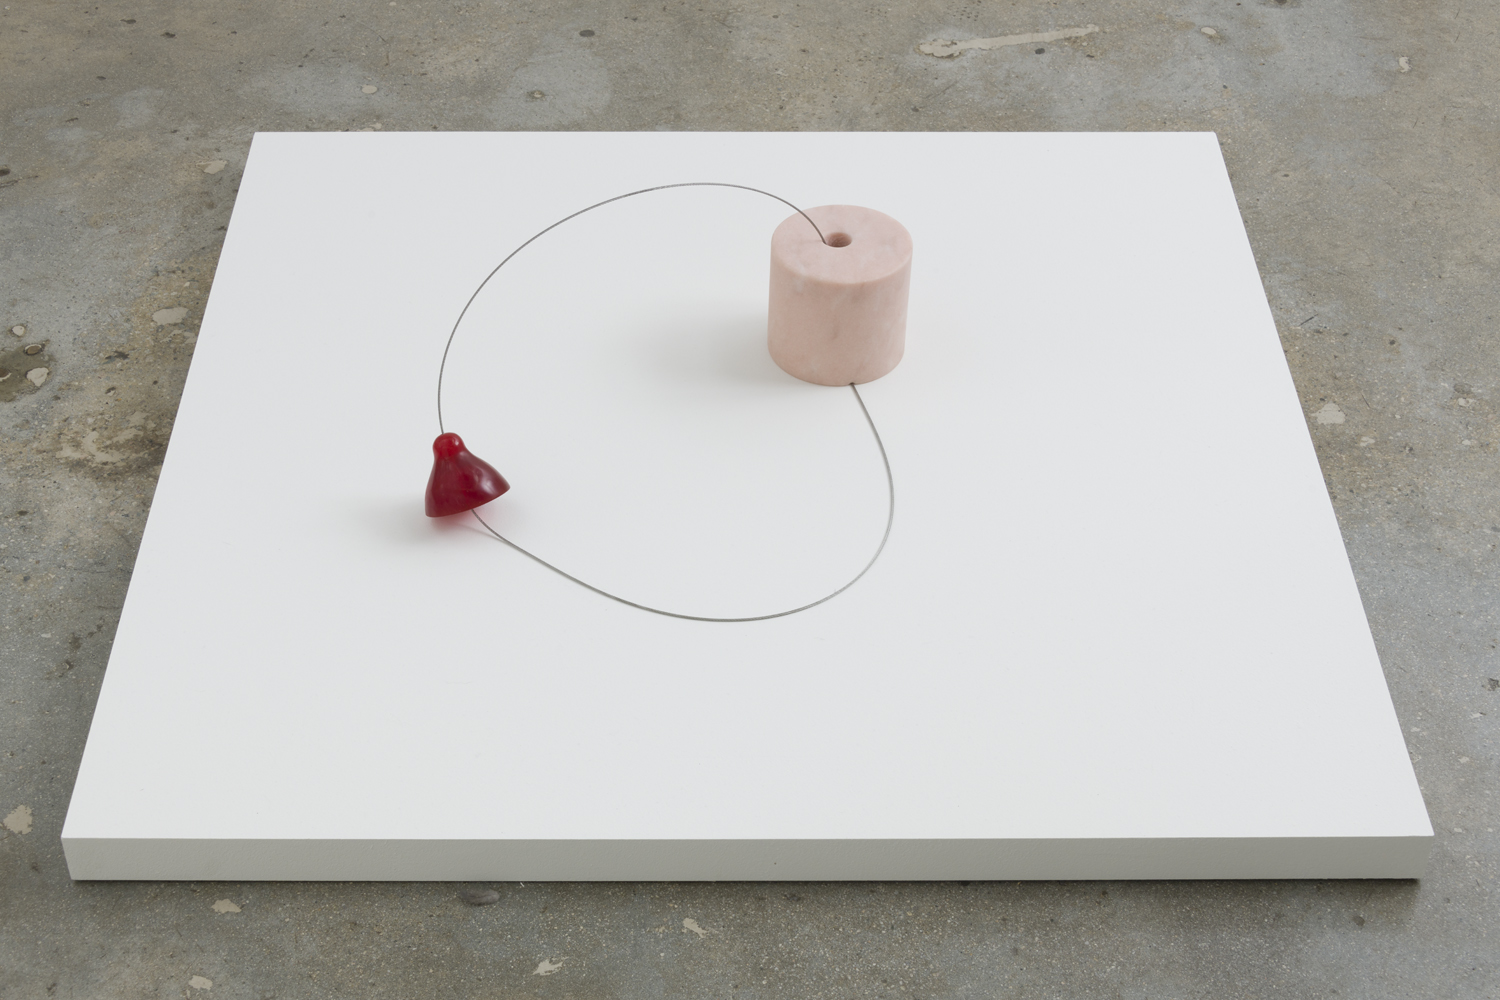 Nevine Mahmoud, Control Panel 2 (Cherry), 2017 marble, stainless steel cable, aluminum, pigmented resin 16 x 16 x 7 inches